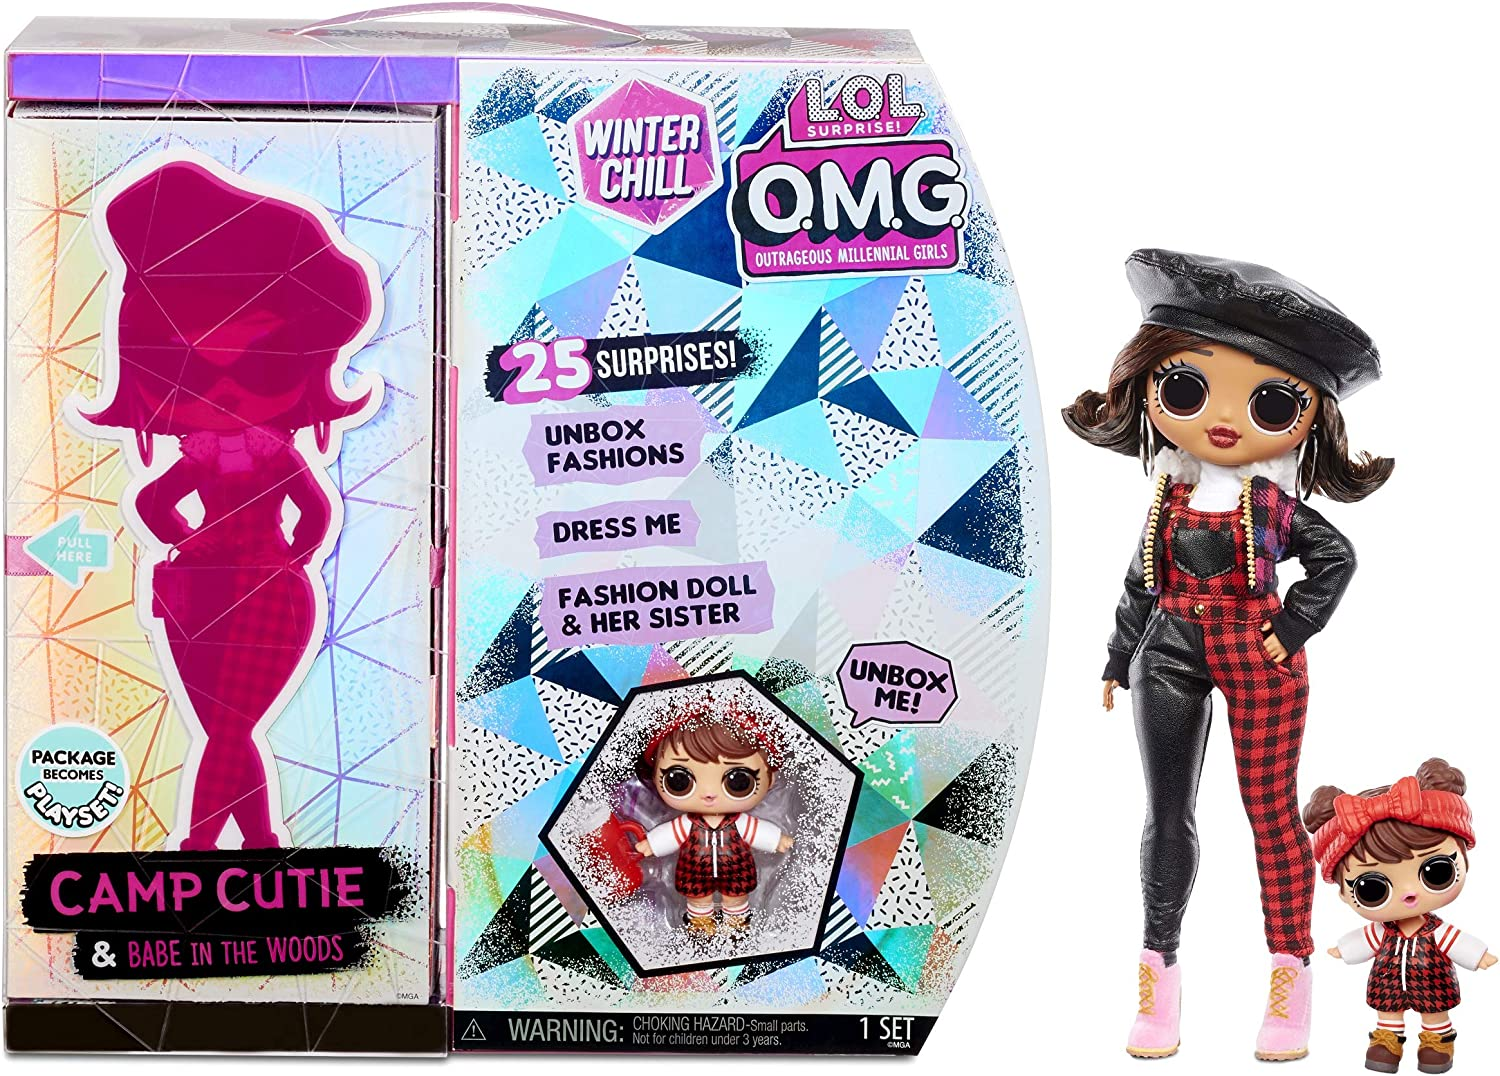 Lol Surprise Omg Winter Chill Camp Cutie Fashion Doll Sister Babe In The Woods Doll Con 25 Sorpresas Para Unbox Ropa Y Accesorios Con Juego Reutilizable Para Niños Niñas